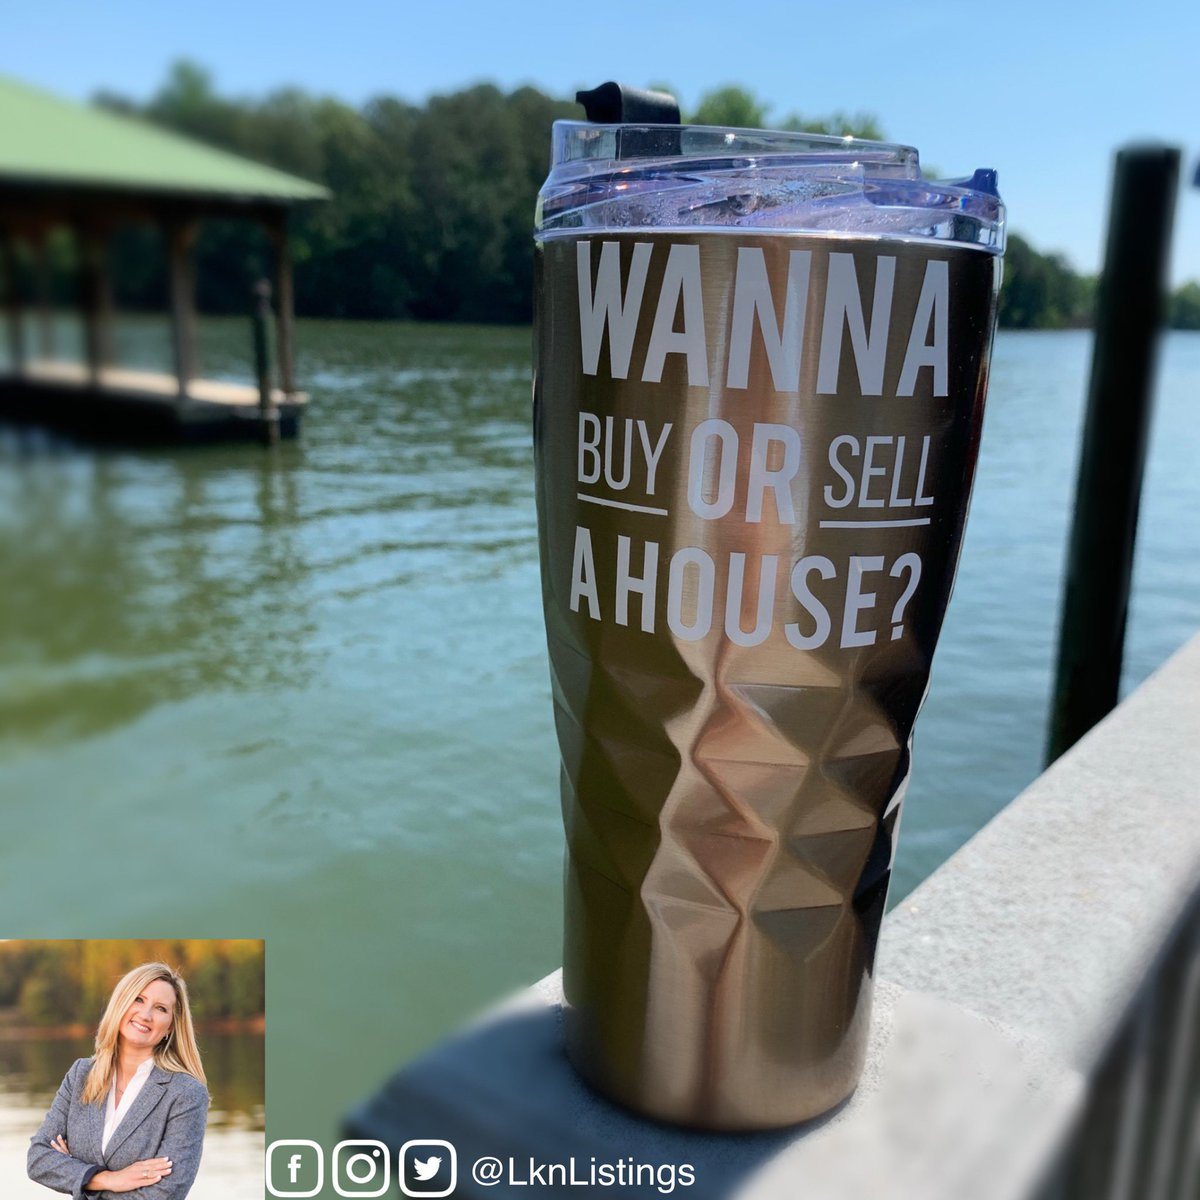 𝑾𝒂𝒏𝒏𝒂 𝑩𝒖𝒚 𝒐𝒓 𝑺𝒆𝒍𝒍 𝒂 🏡 . . . . . #wanna #buy #or #sell #a #house #lknlistings #lake #dock #metalroof #pier #water #sunshine #trees #cup #coffee https://t.co/g8ejKJdEUo